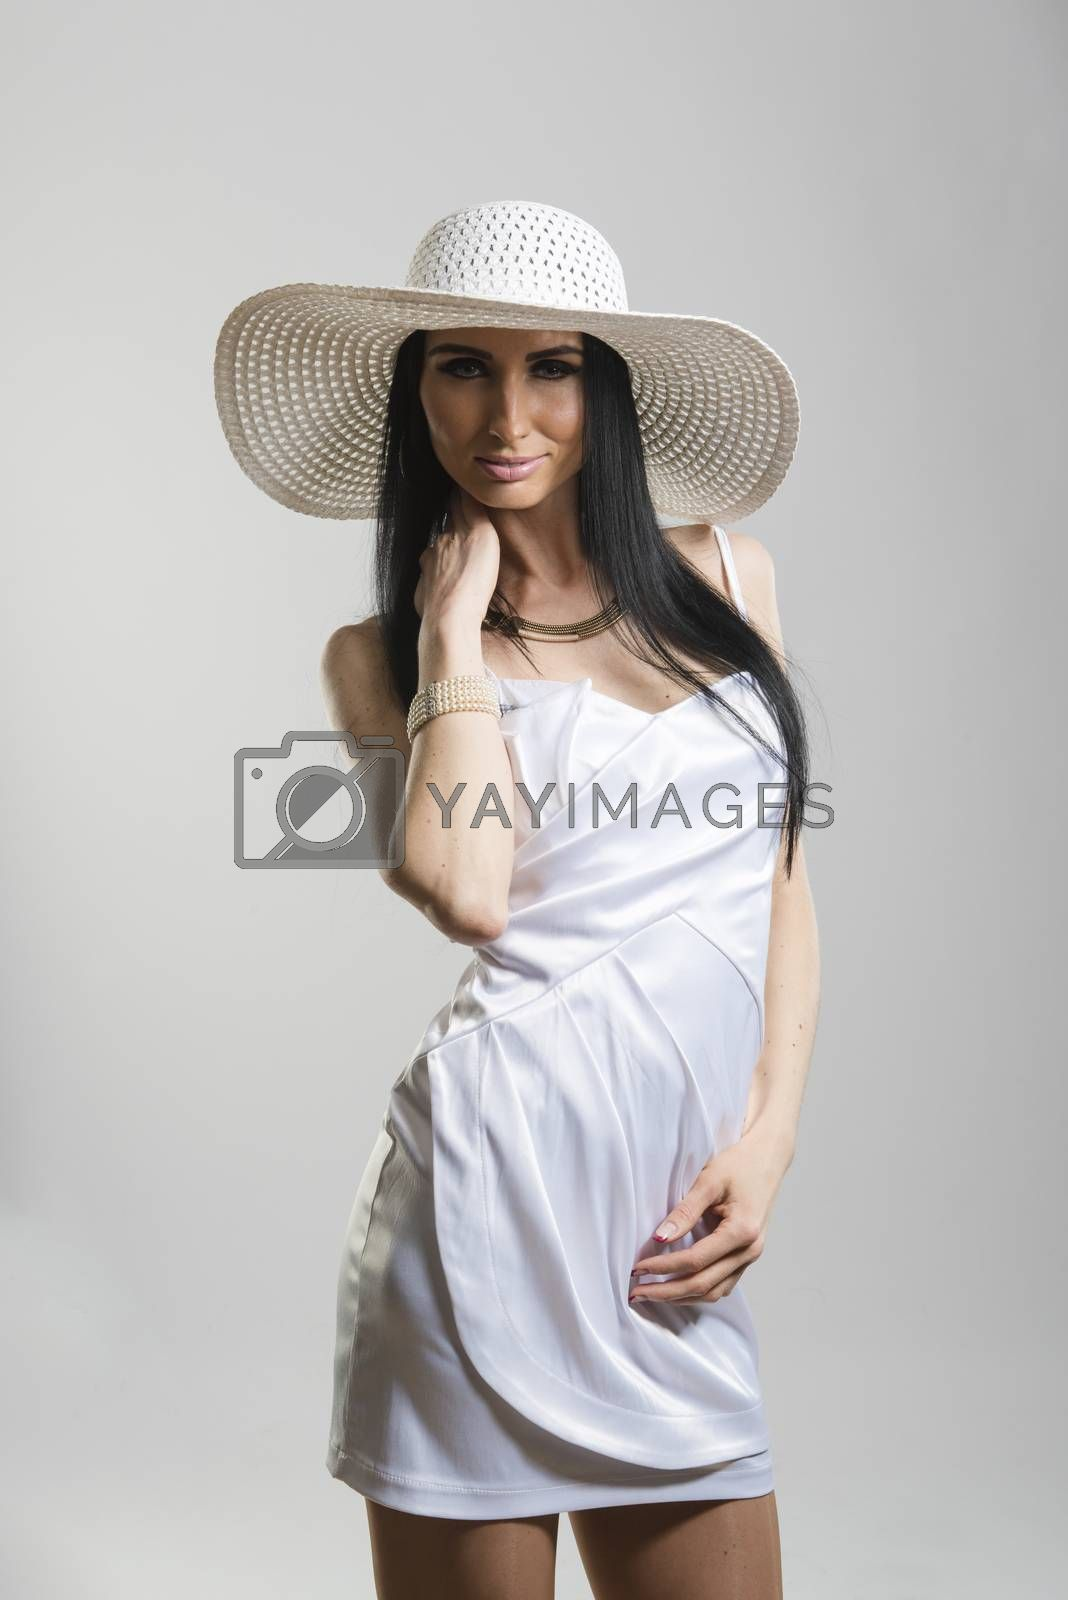 Royalty free image of Pretty Caucasian woman in white dress by icenando